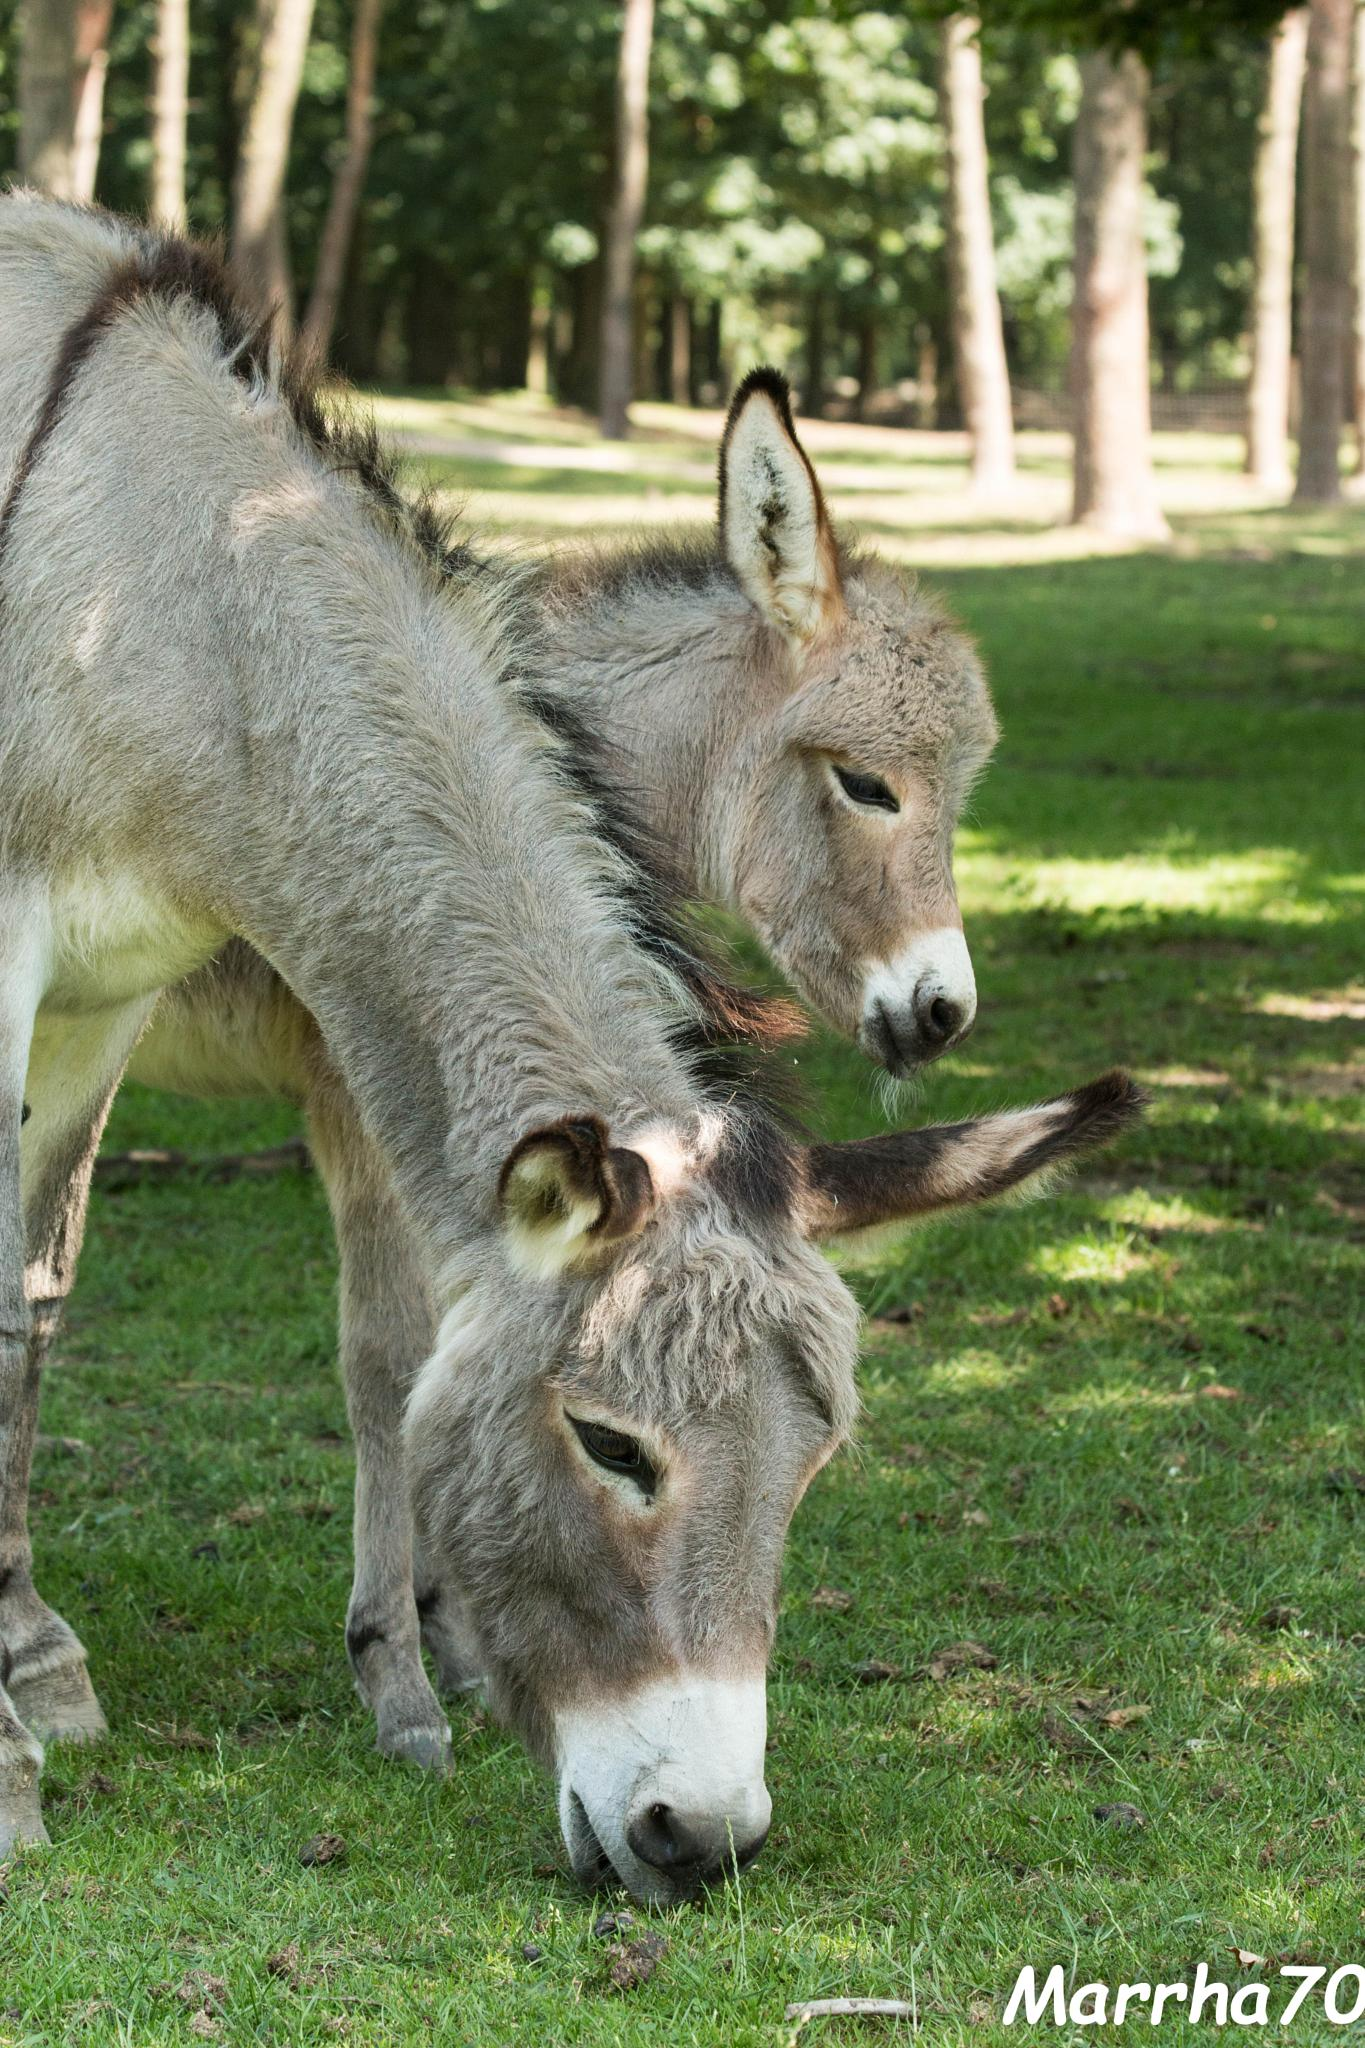 Donkey and foal by marrha70